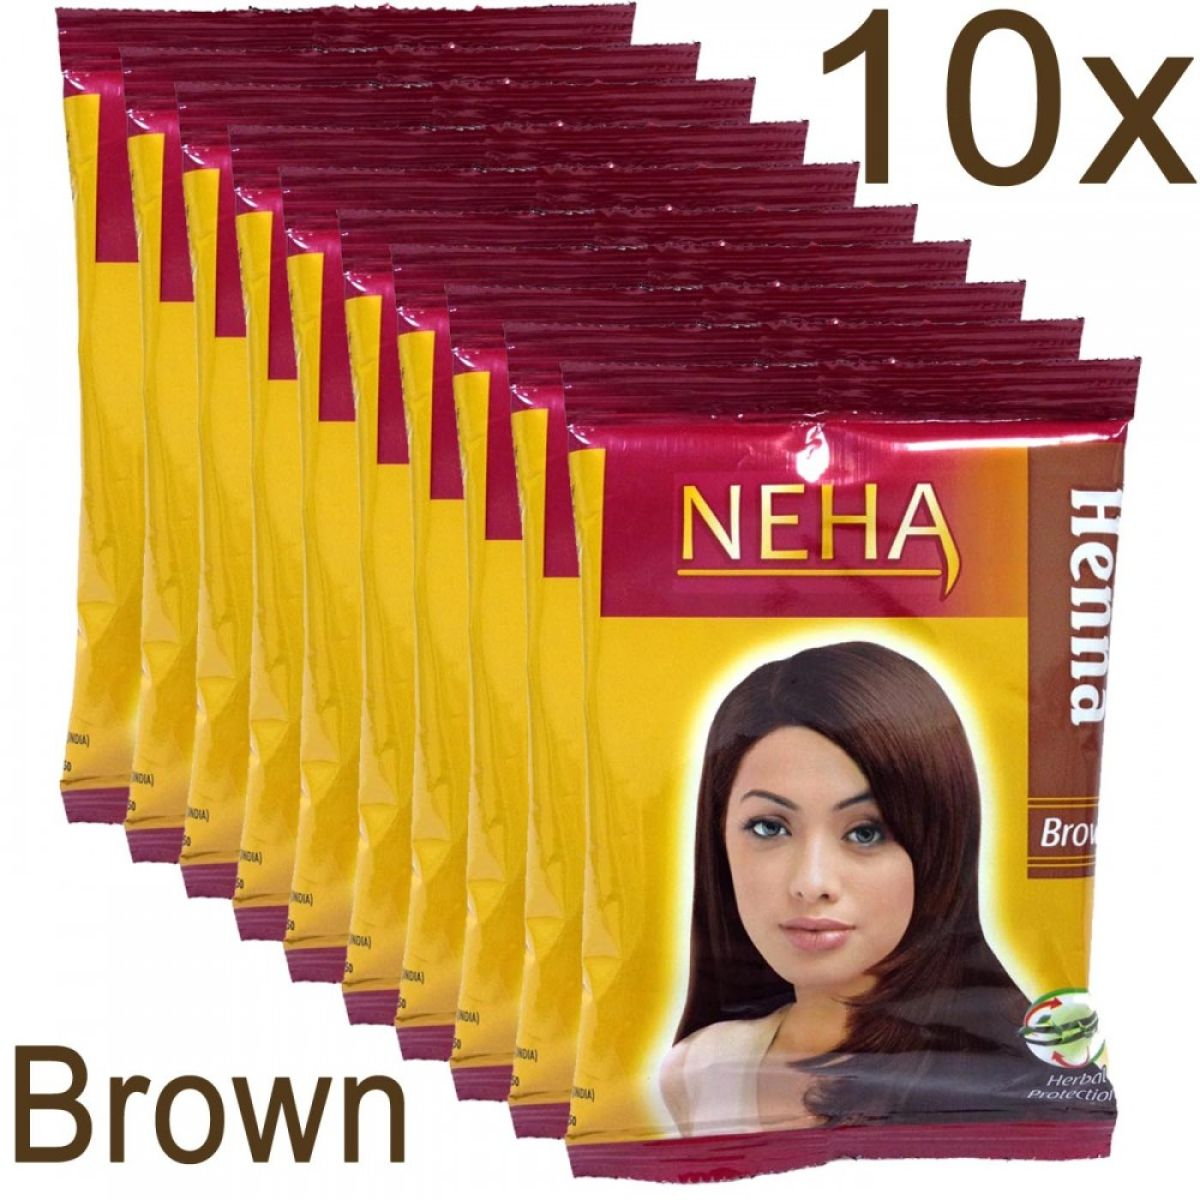 10x Neha Herbal Henna Hair Powder - Haarfärbemittel (Braun) 200g